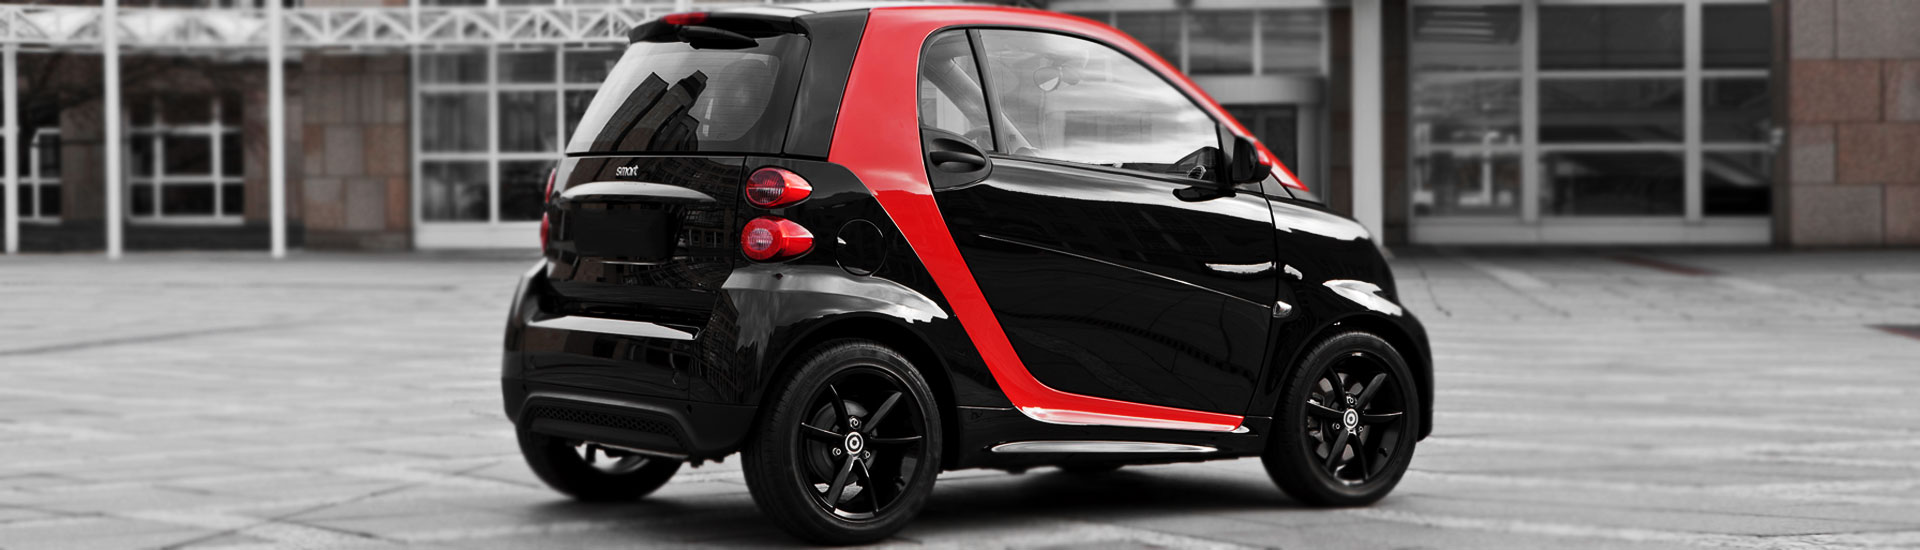 SMART Fortwo Window Tint